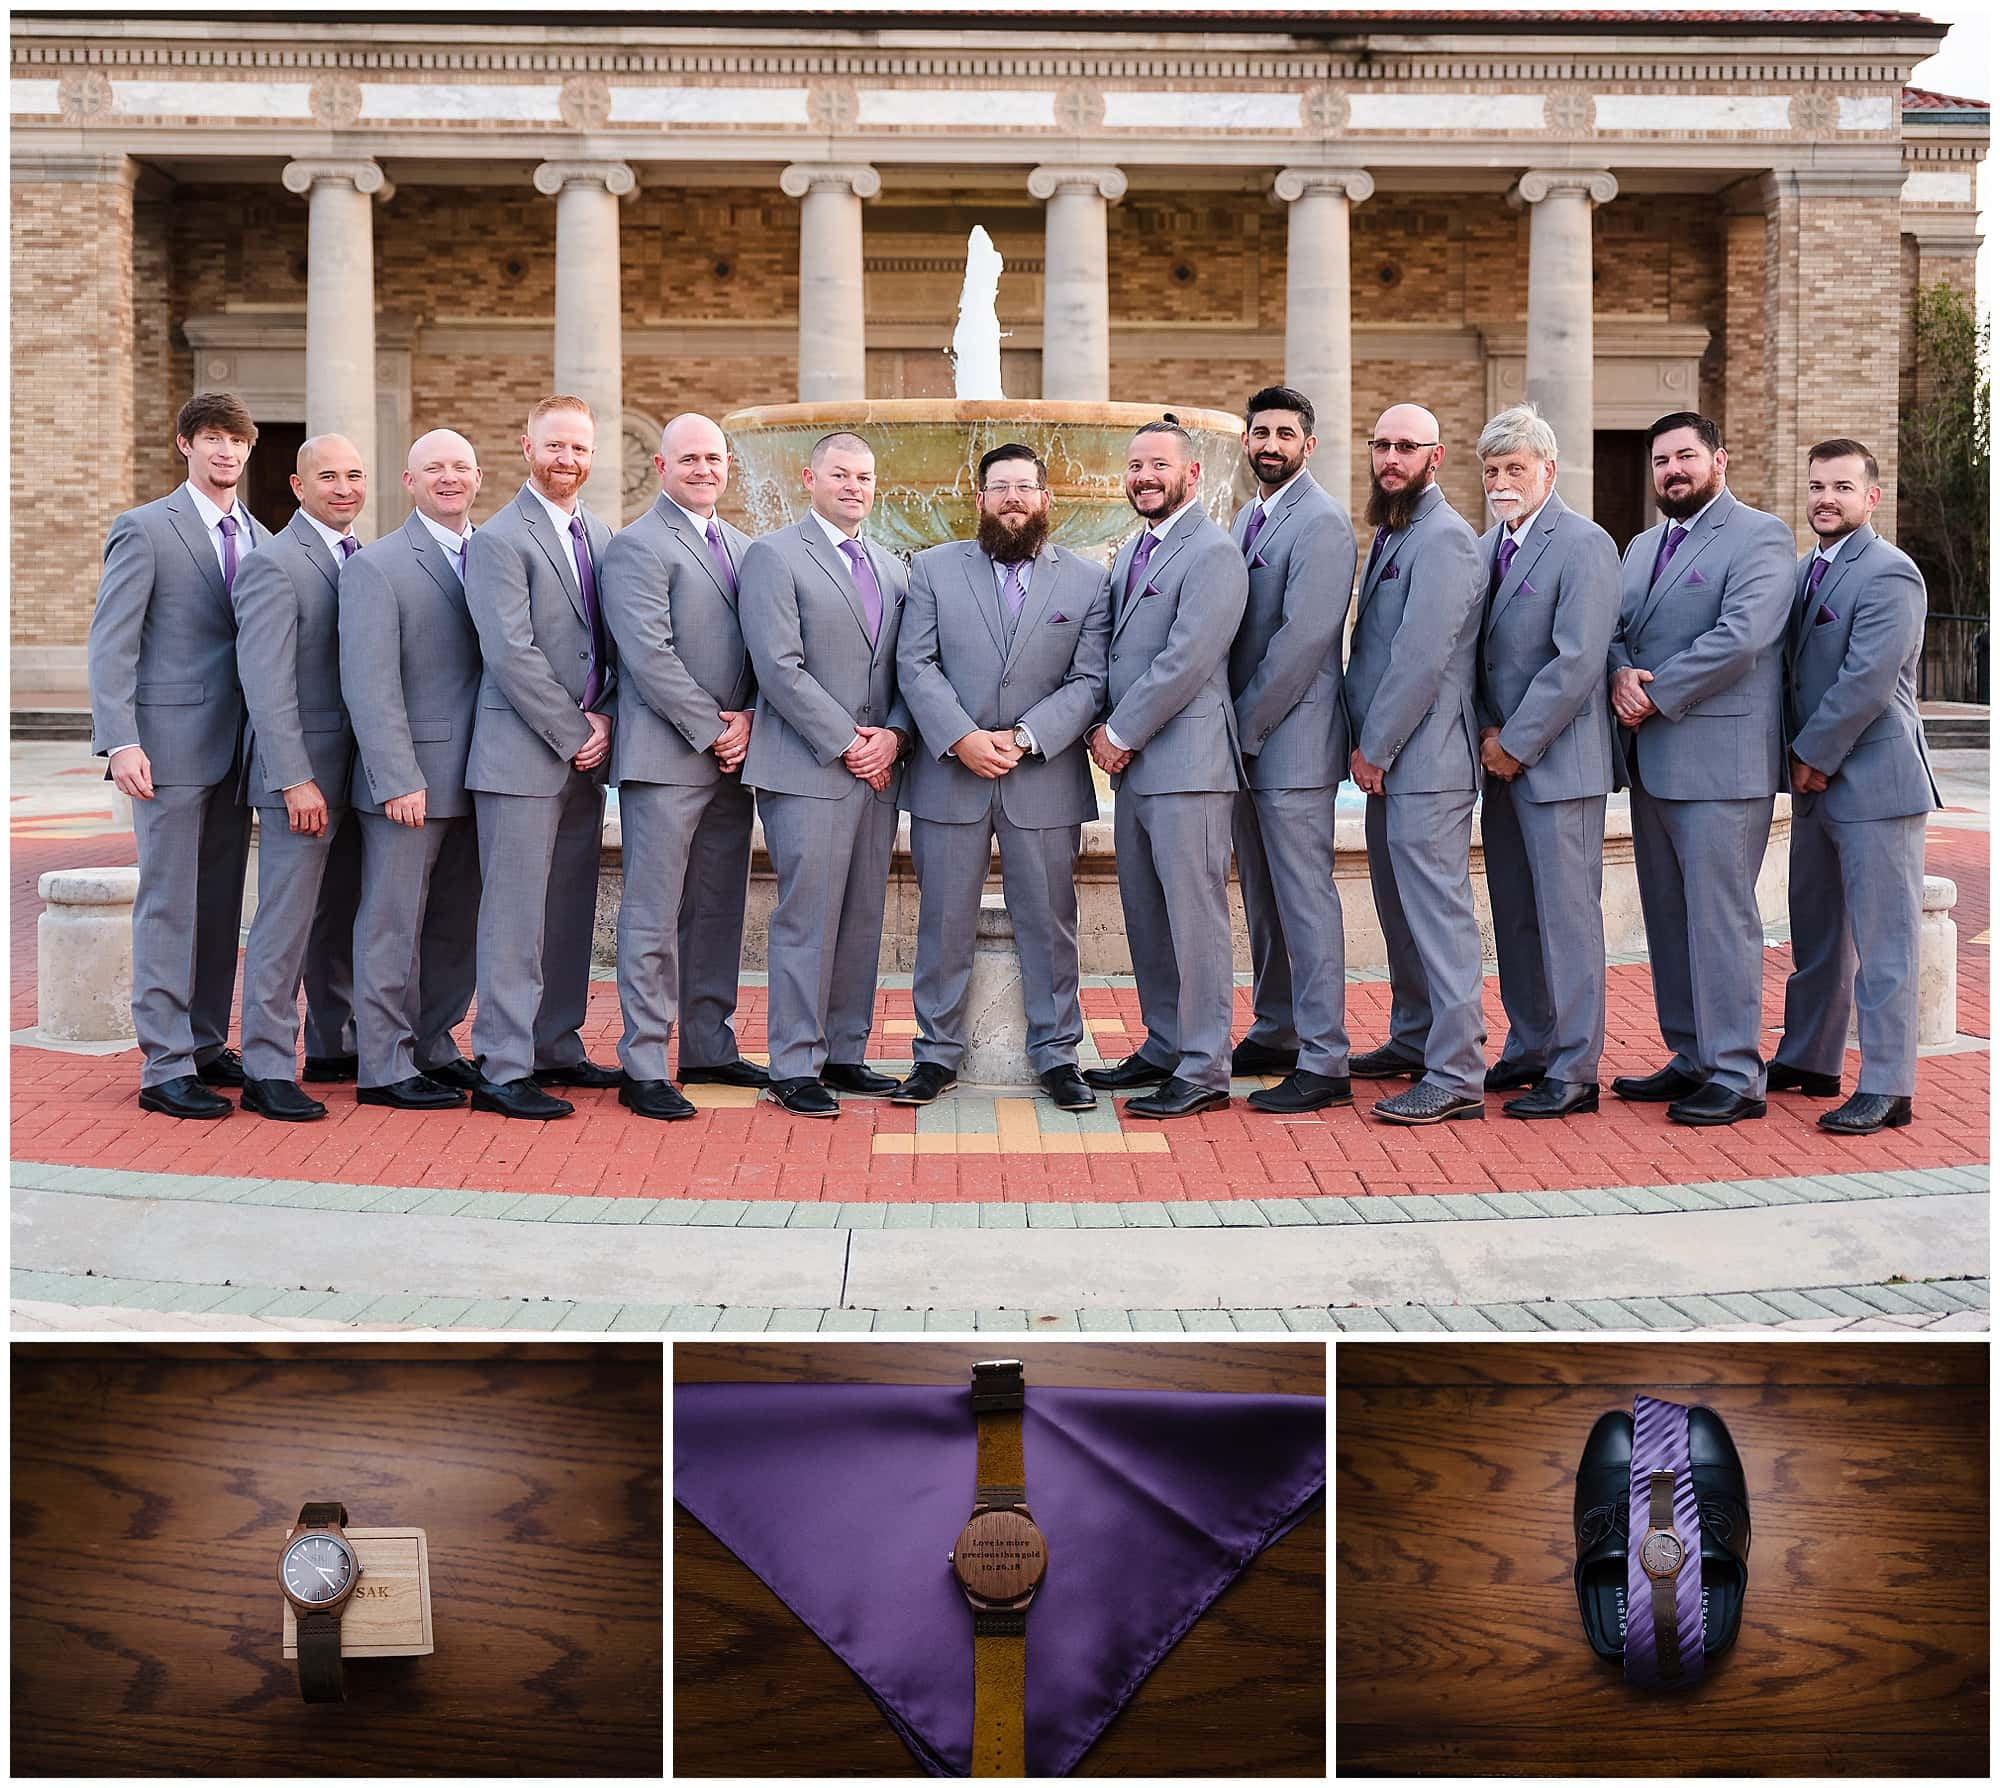 Groomsmen and groom's watch and shoes